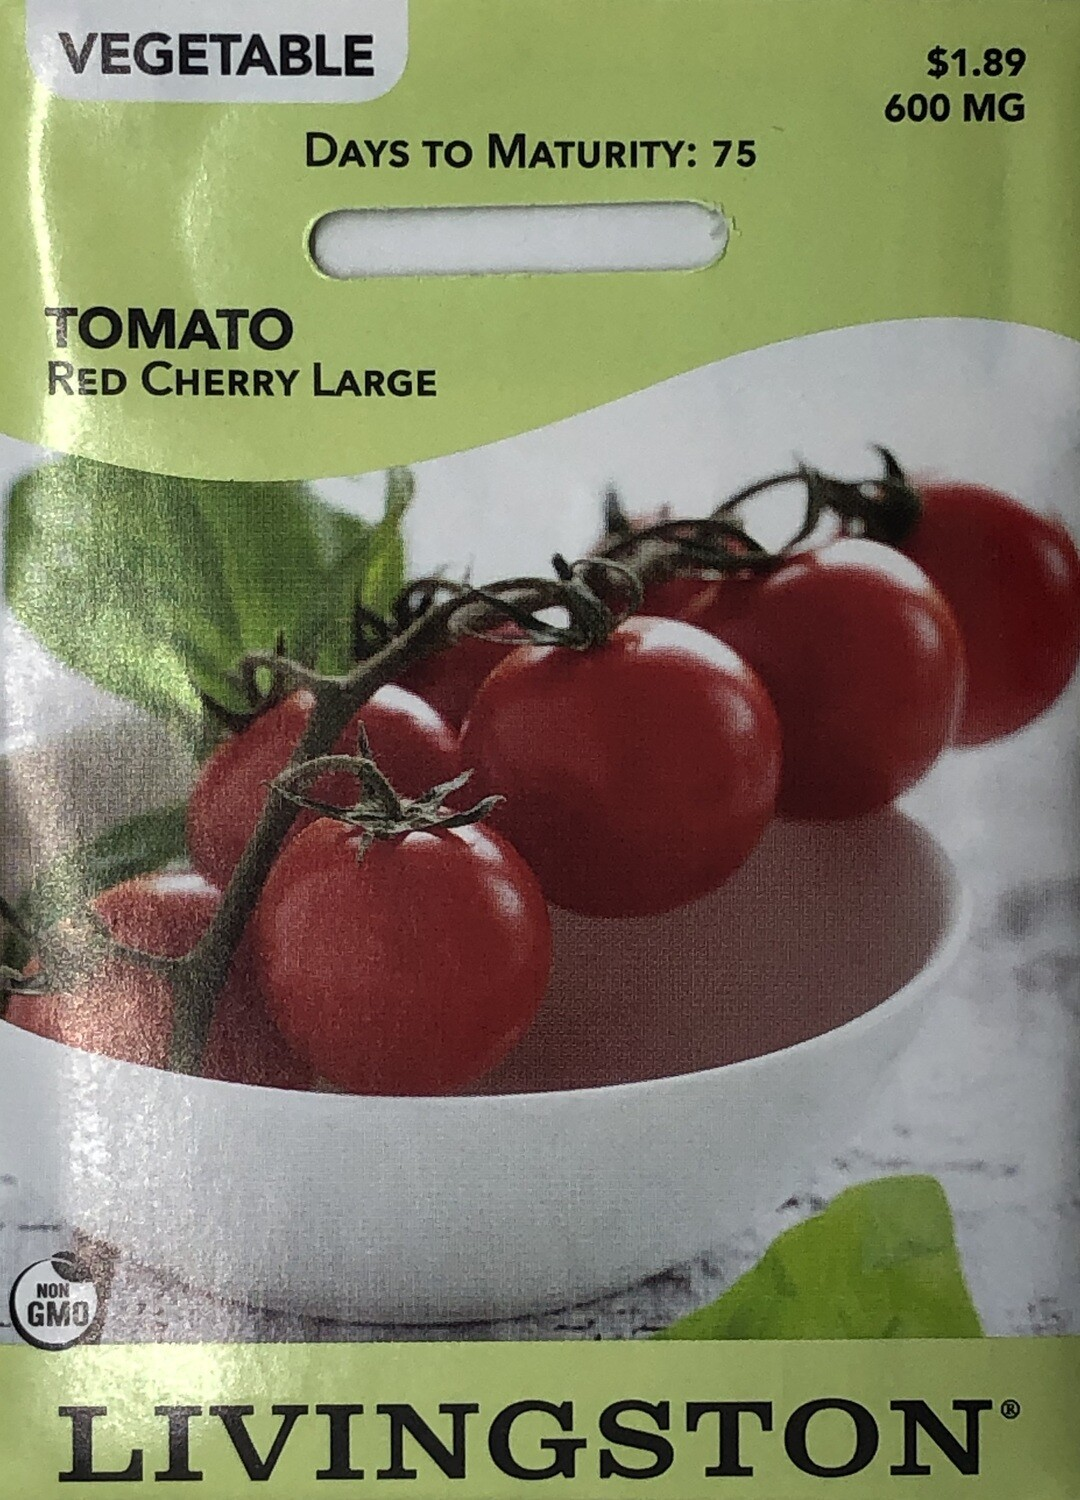 TOMATO - RED CHERRY LARGE